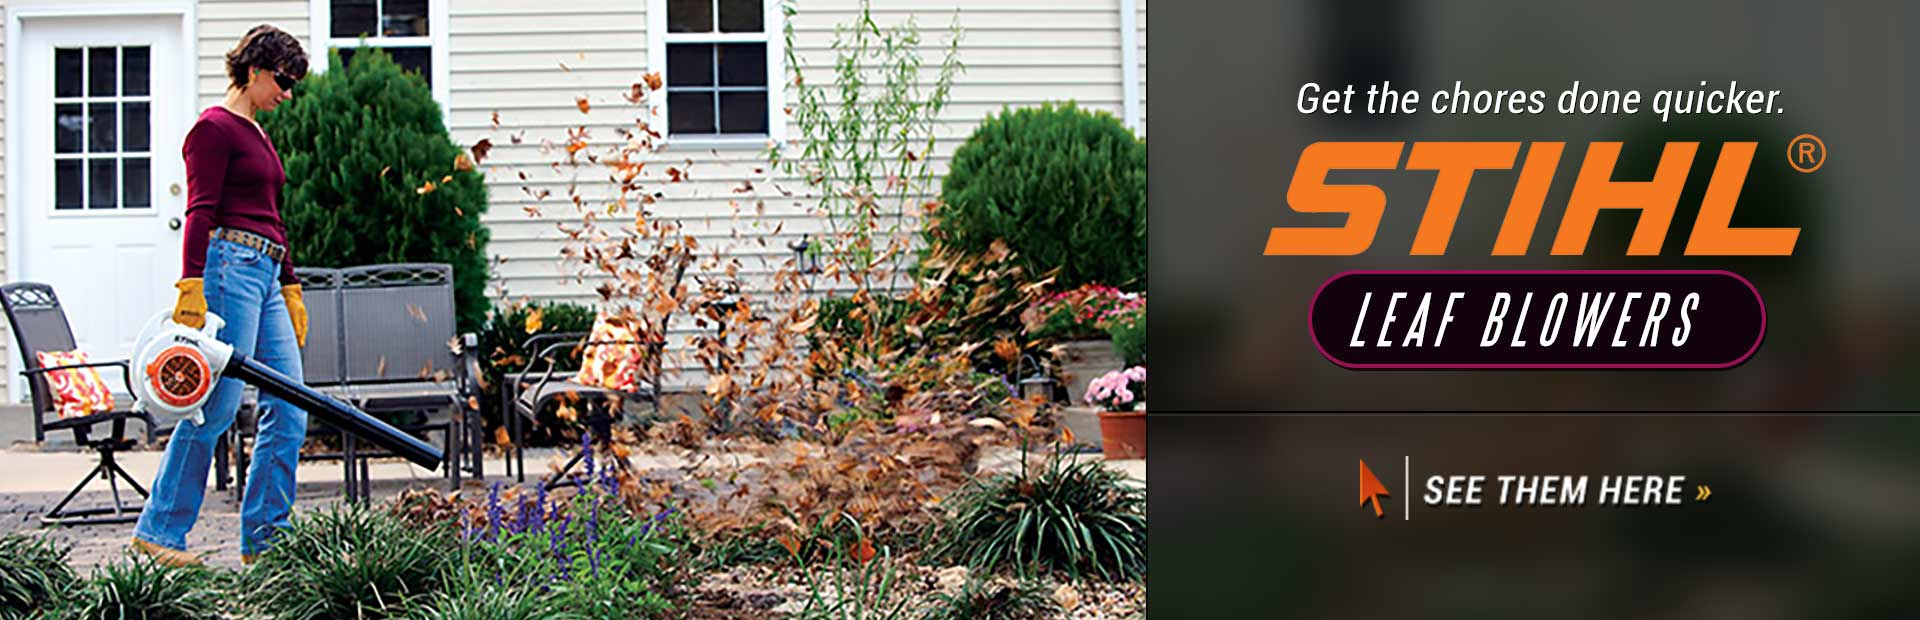 STIHL Leaf Blowers: Click here to view the models.